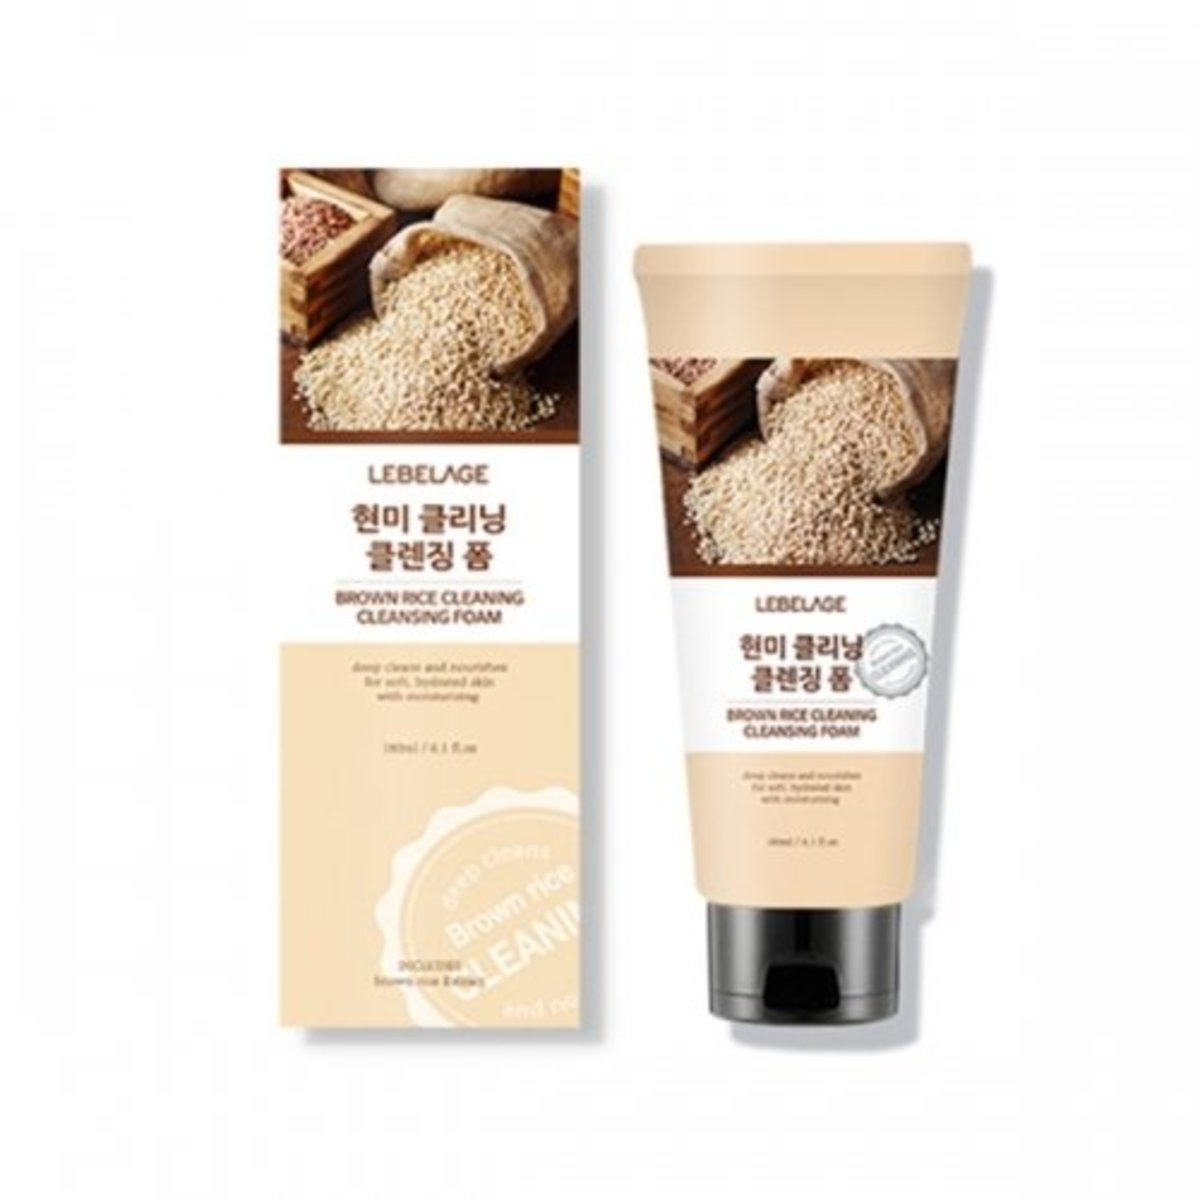 brown rice cleaning cleansing foam 180ml